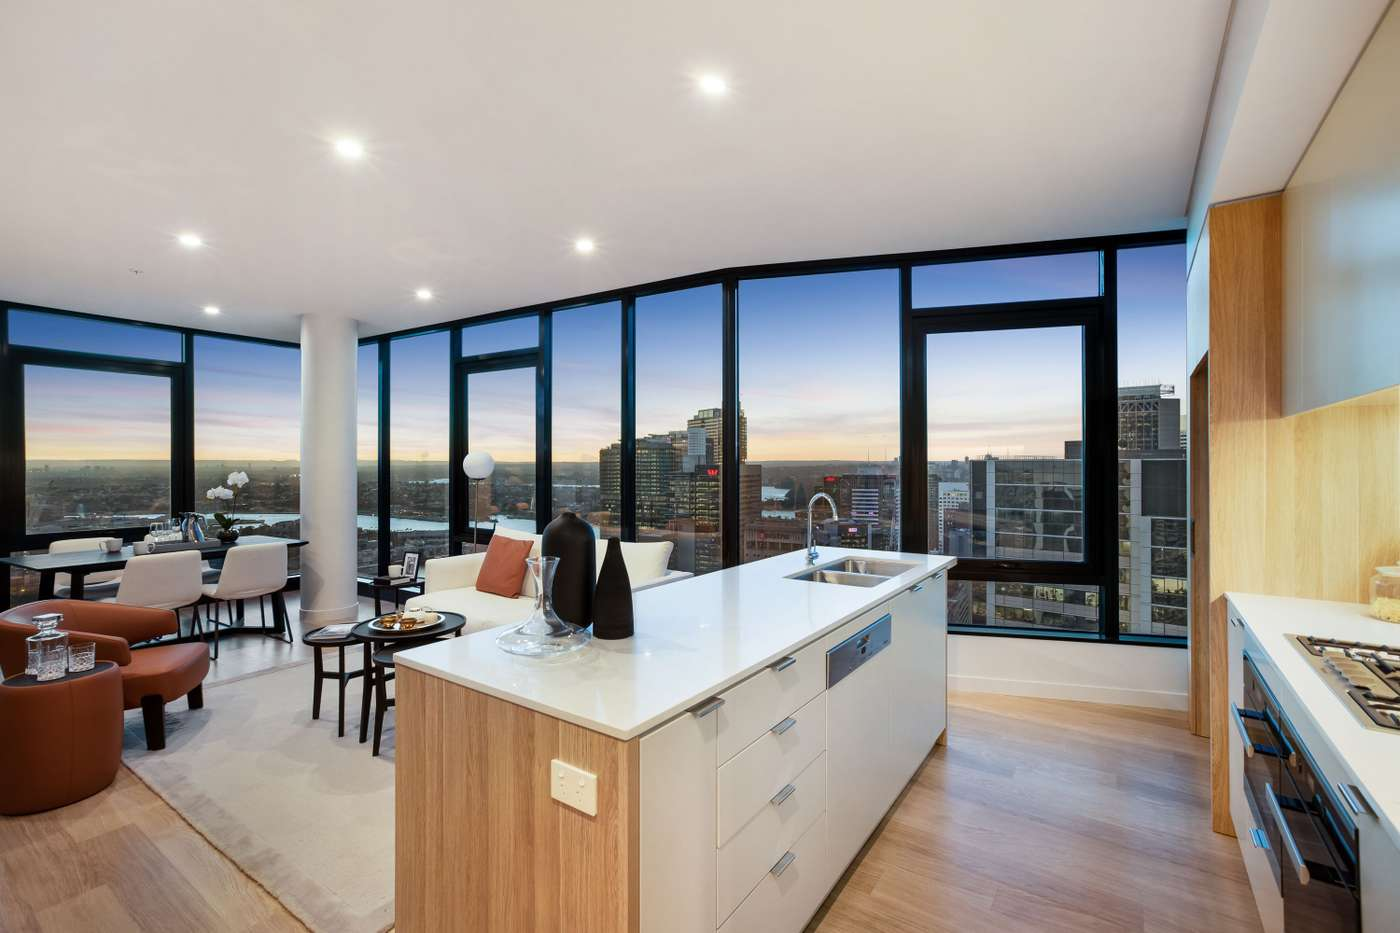 Main view of Homely apartment listing, 3802/38 York Street, Sydney, NSW 2000